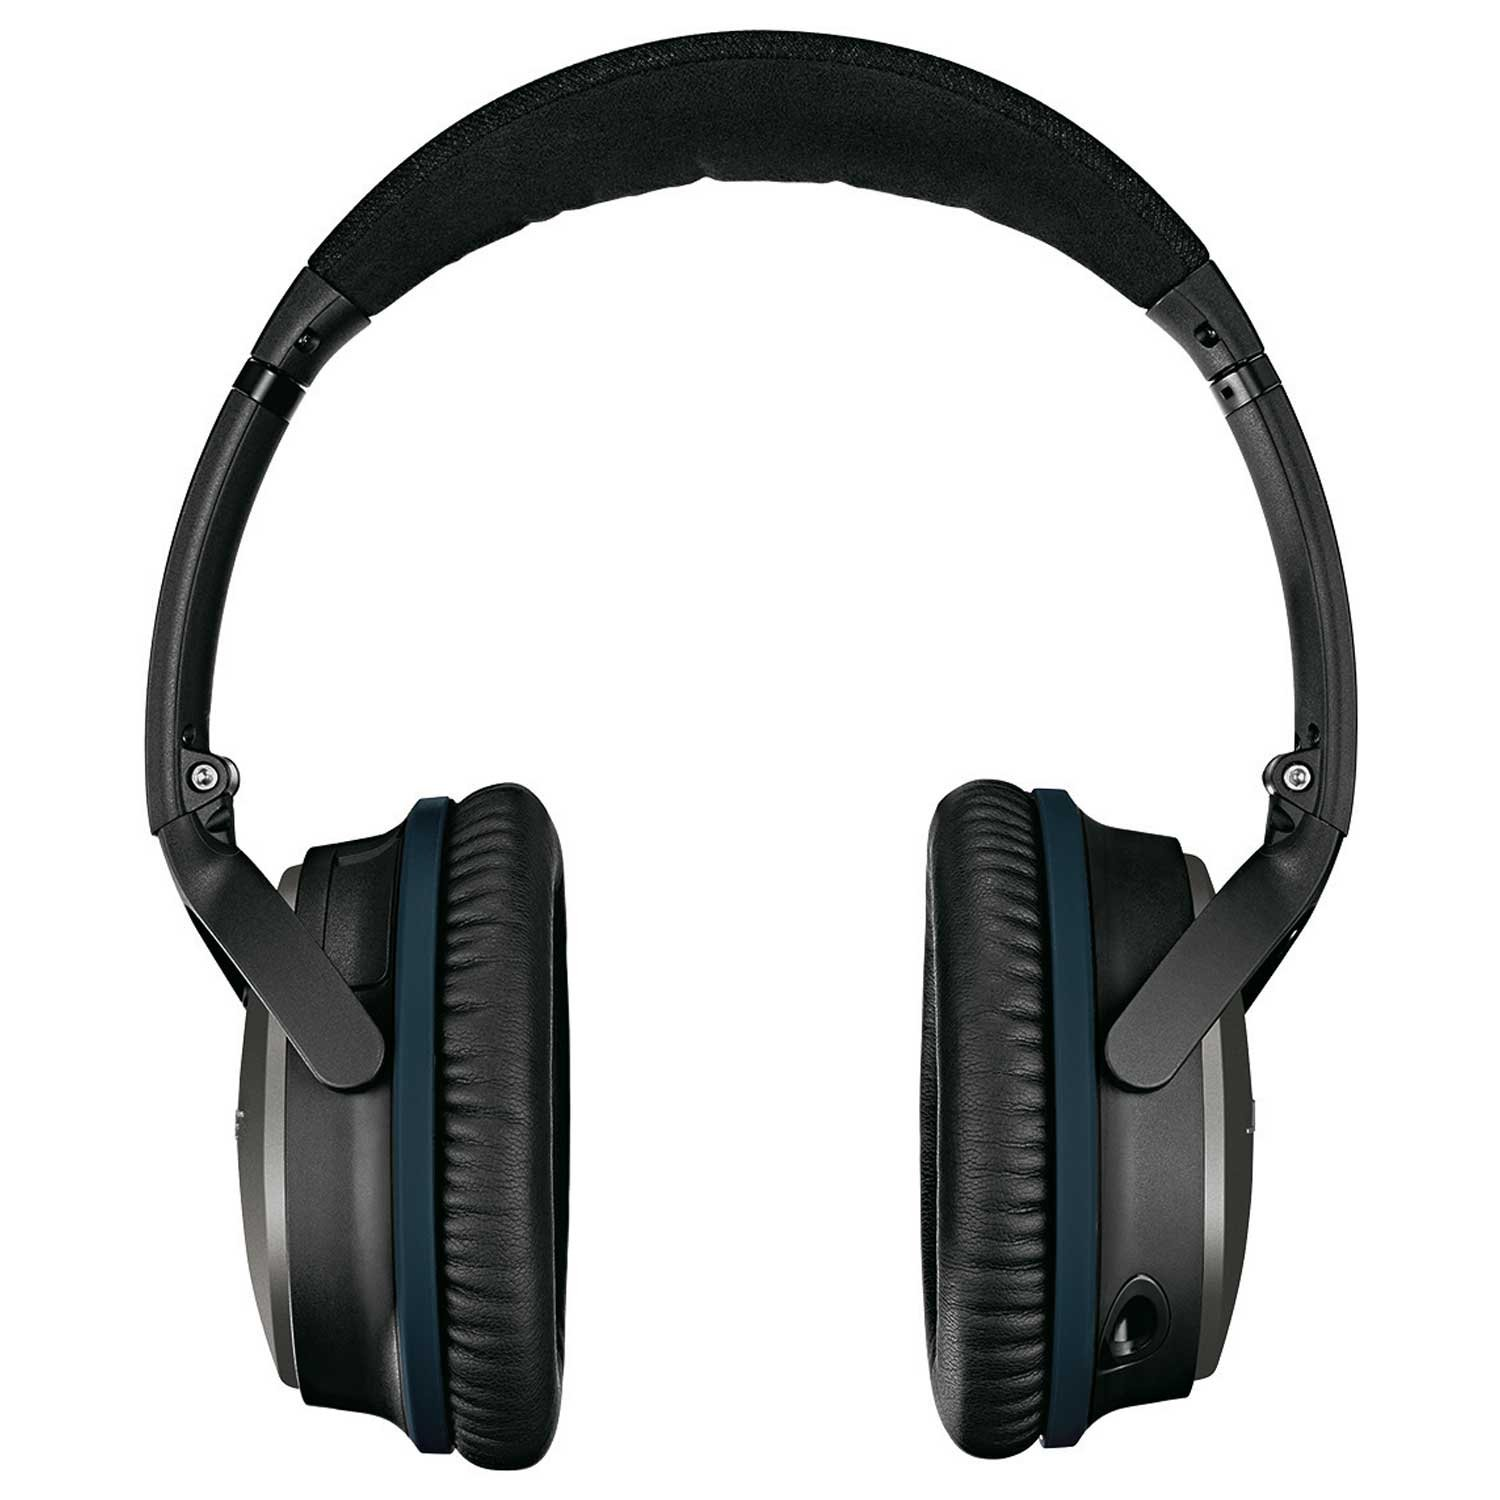 Bose QuietComfort 25 Acoustic Noise Cancelling Headphones for Apple devices - Black (wired, 3.5mm) by Bose (Image #5)